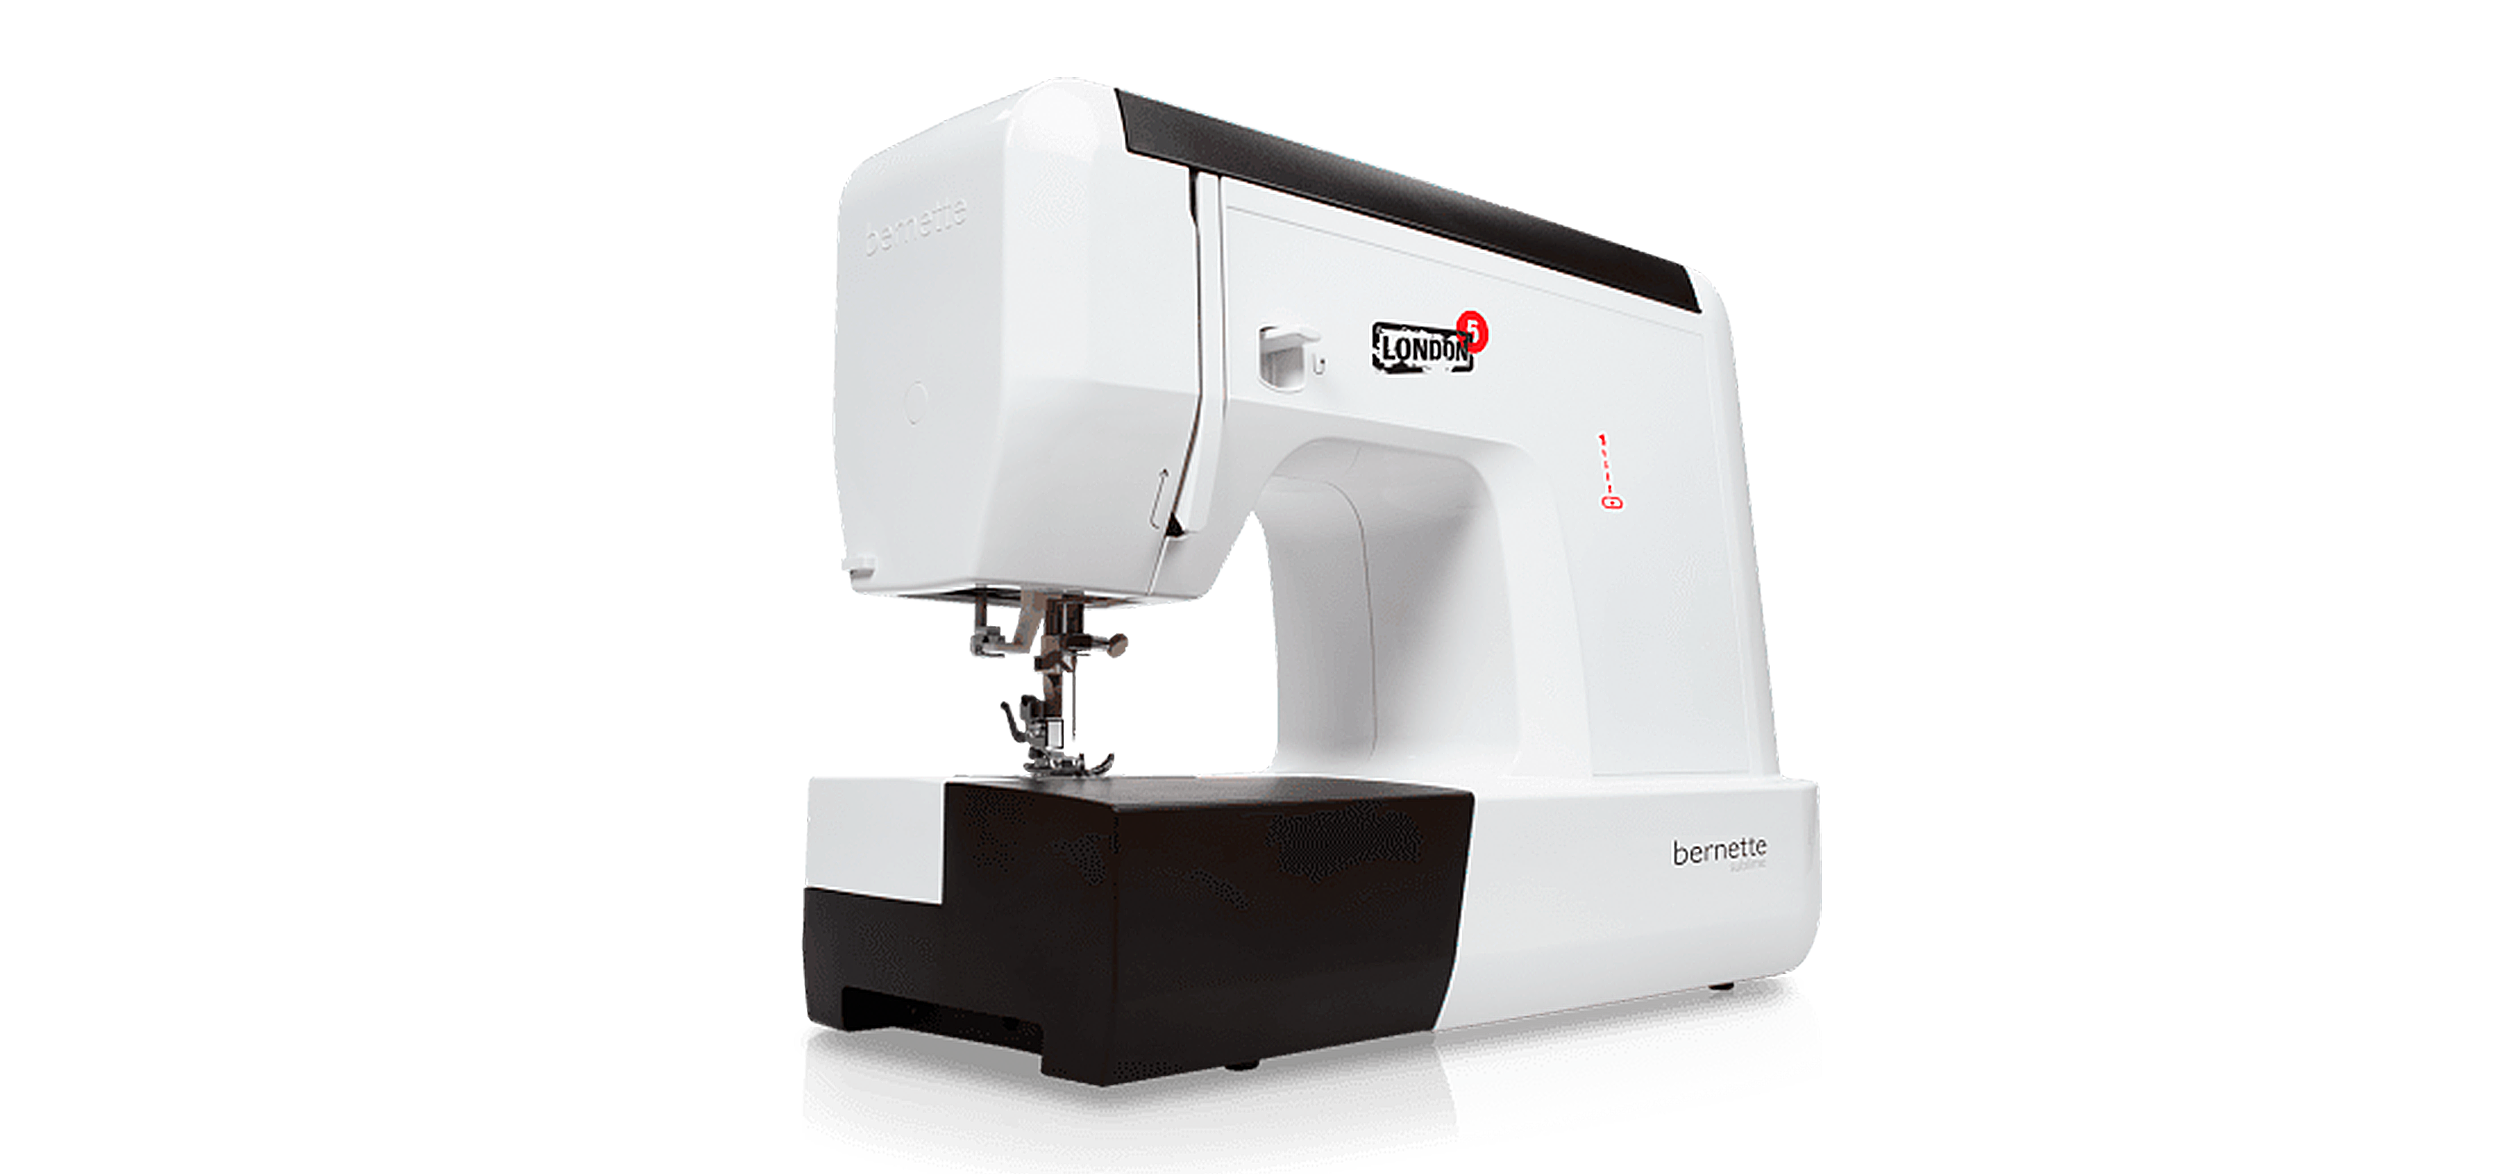 Bernina Bernette 15 (London 5)